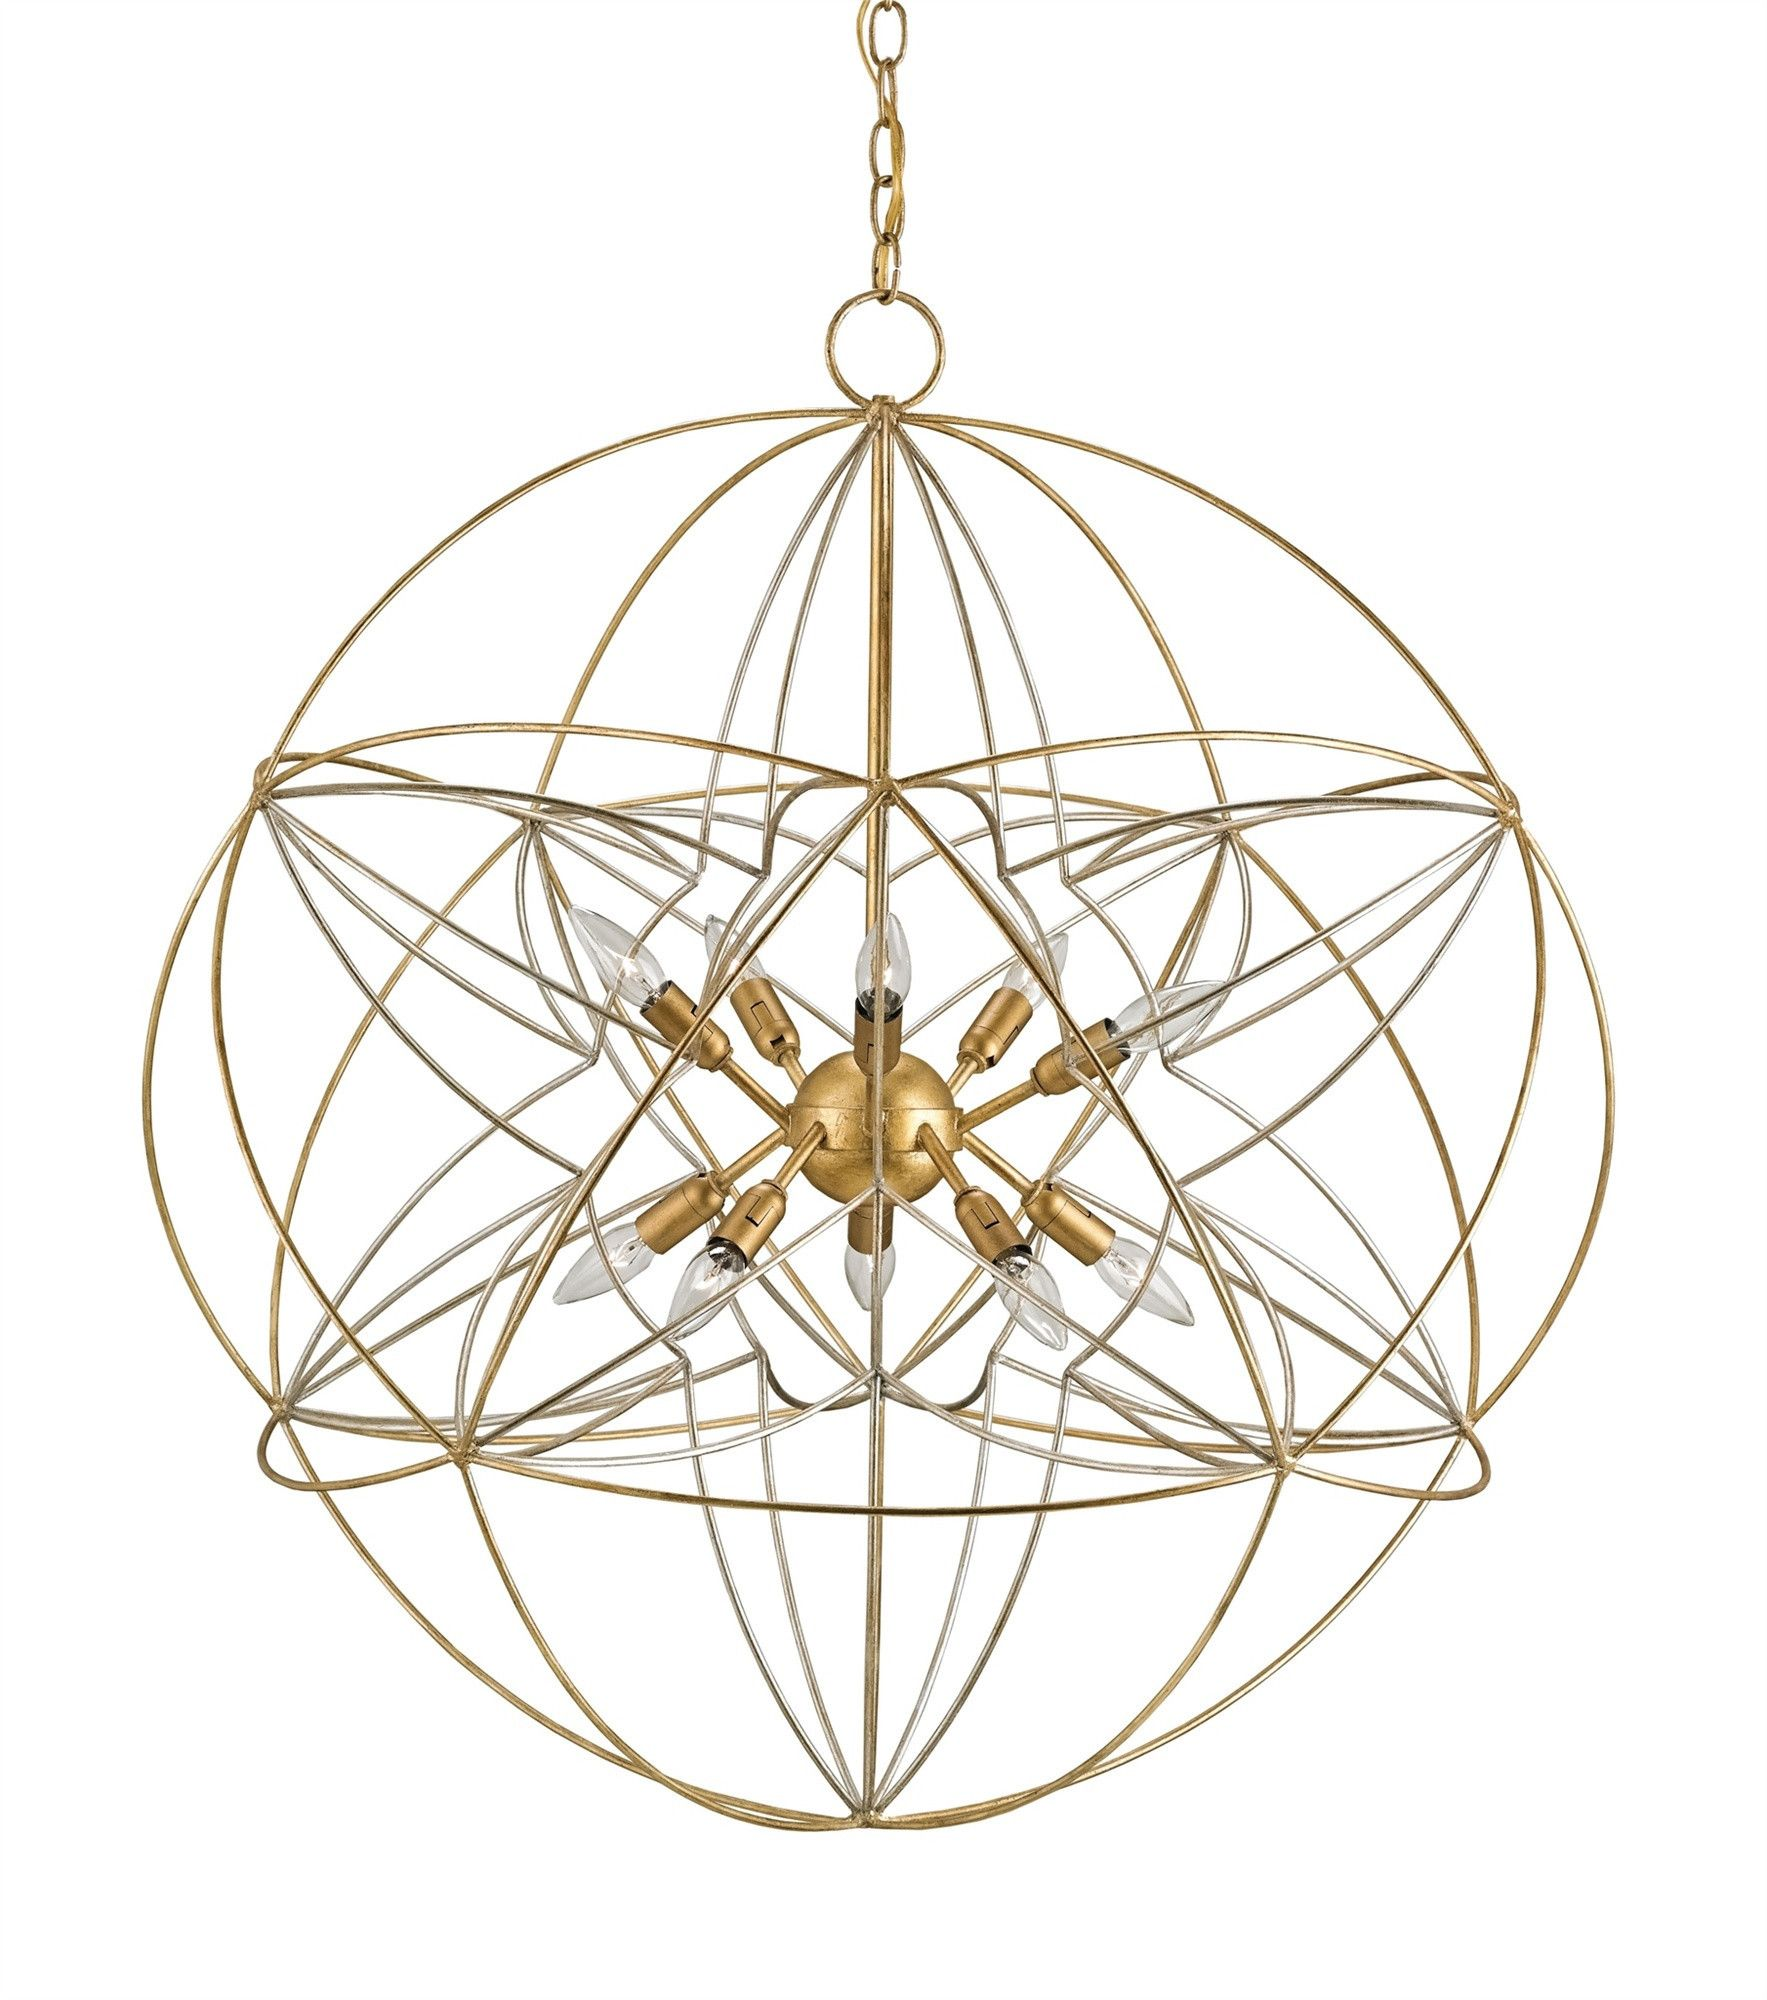 Zenda Orb Chandelier design by Currey & pany